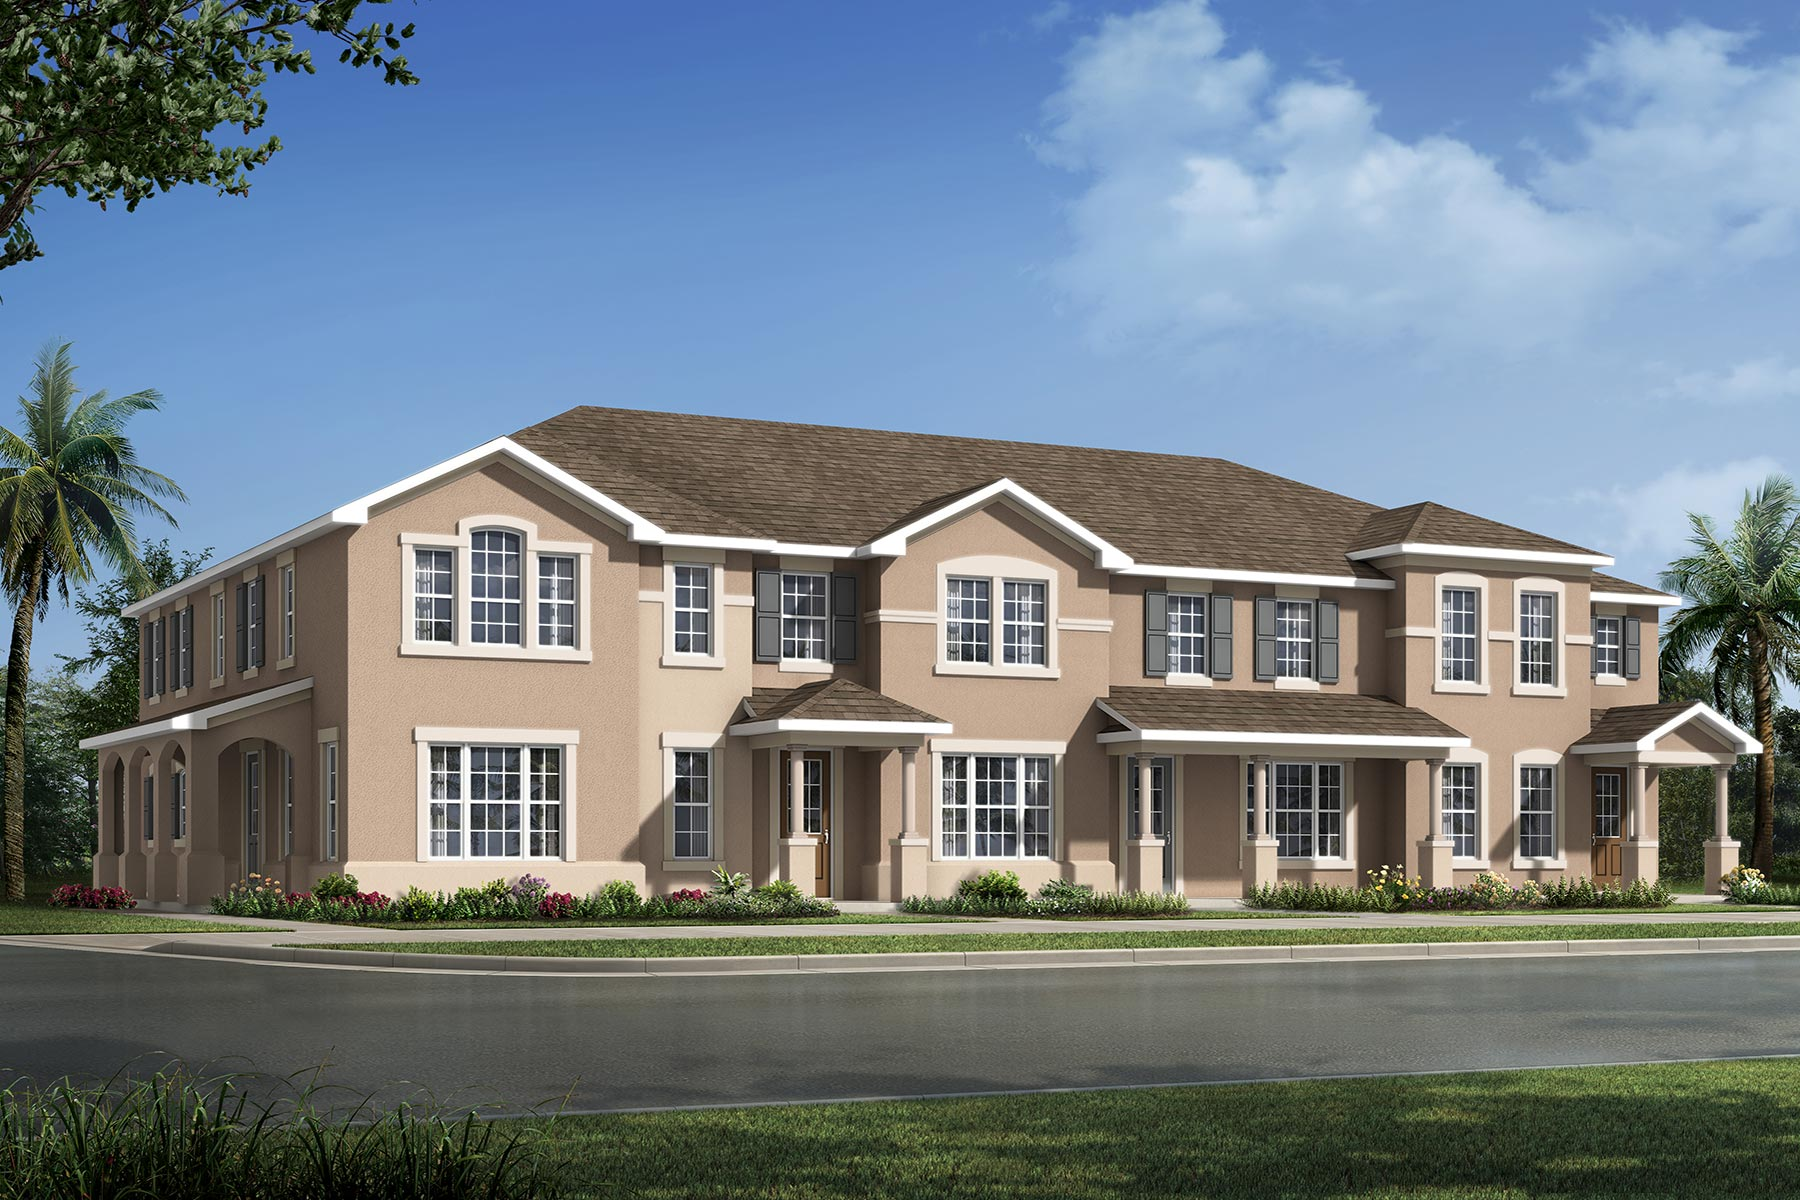 Camilla III Plan TownHomes at Tohoqua in Kissimmee Florida by Mattamy Homes